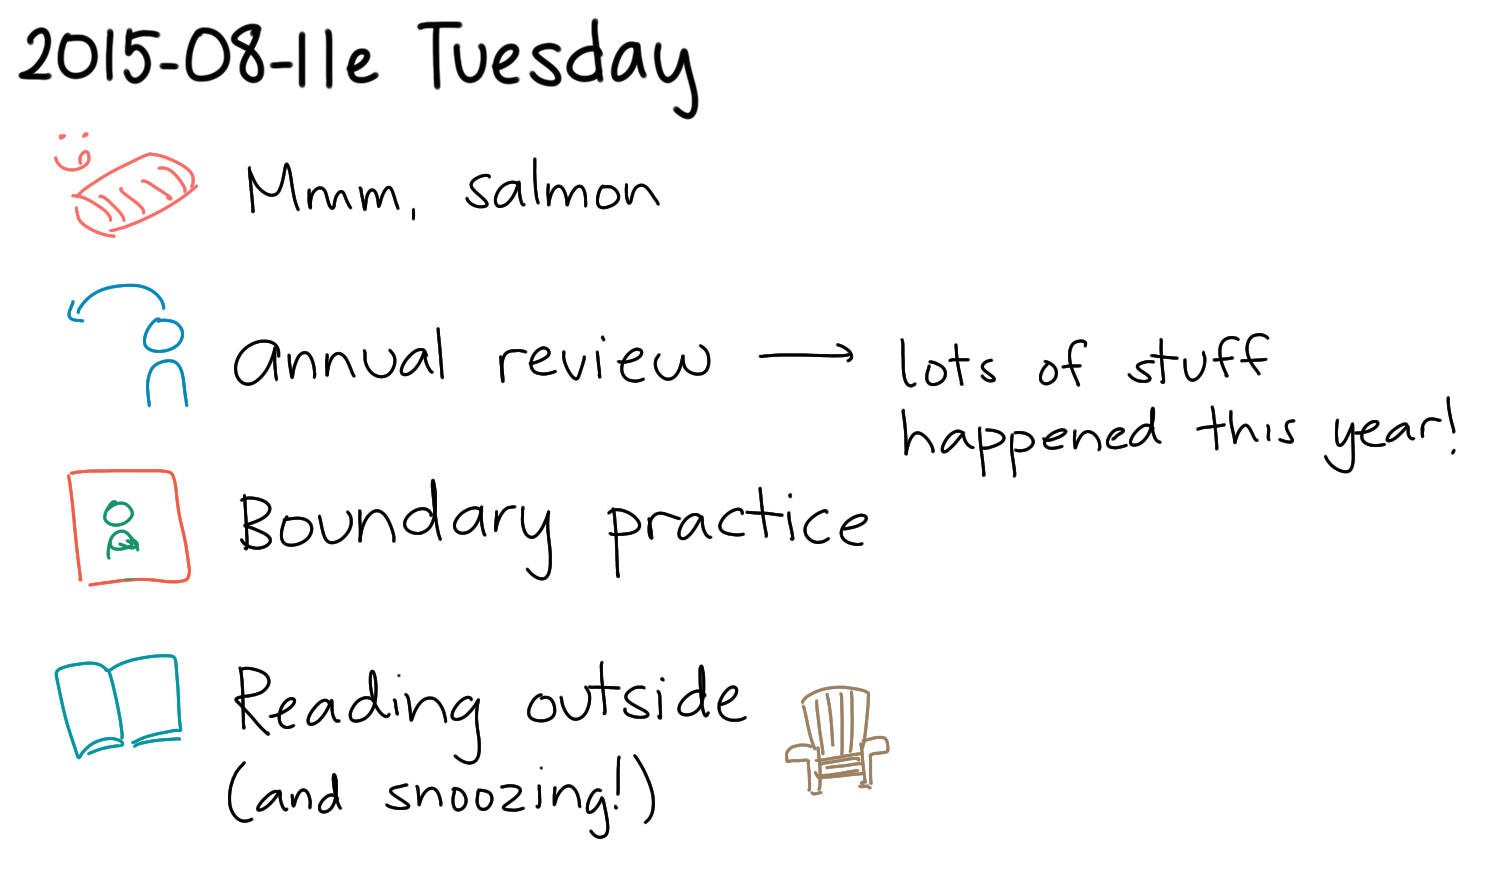 2015-08-11e Tuesday -- index card #journal.png